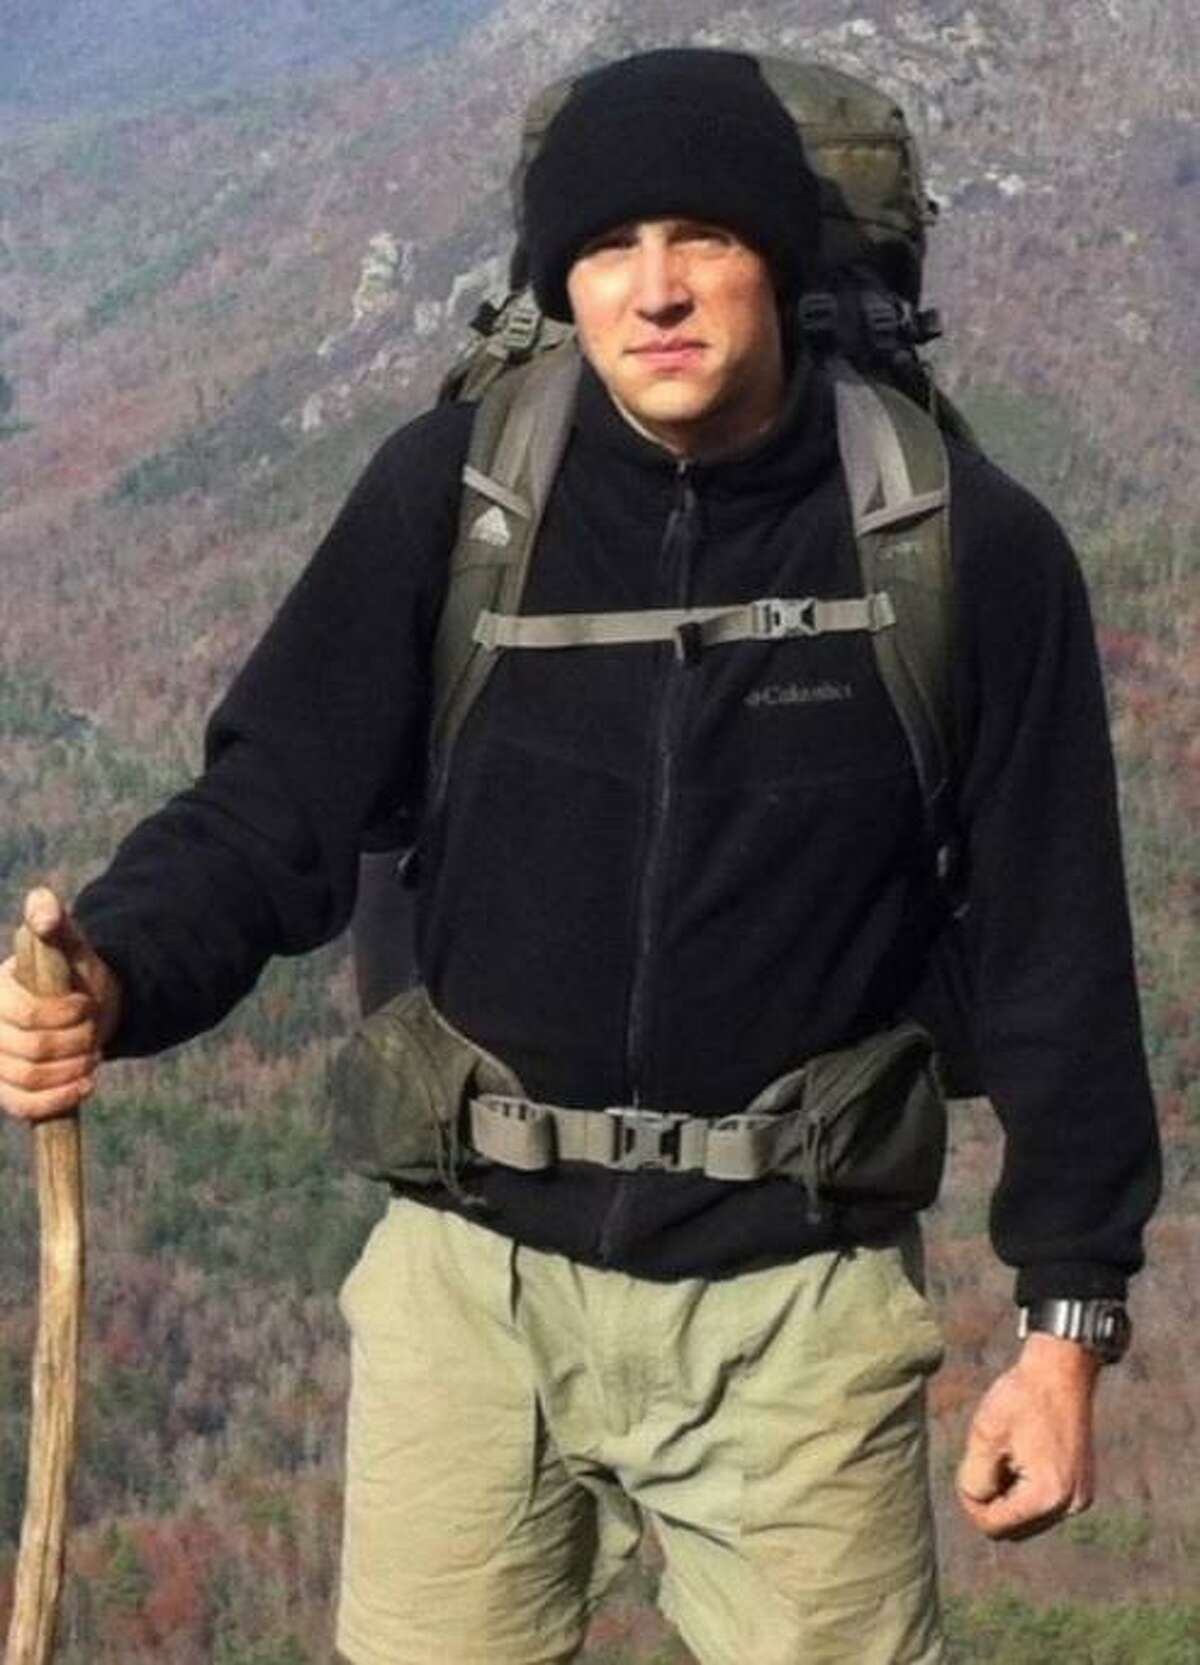 Authorities in Central Sierra Nevada, Calif. are looking for a 24-year-old Marine from Washington, Conn., who went on a hike in late February and hasn't been seen since, officials said. Marine Corps First Lt. Matthew Kraft planned a 195-mile hike through mountainous areas of Sequoia and Kings national parks in California which was supposed to conclude March 4, 2019, said members of the Mono County, Calf., Sheriff's Office.